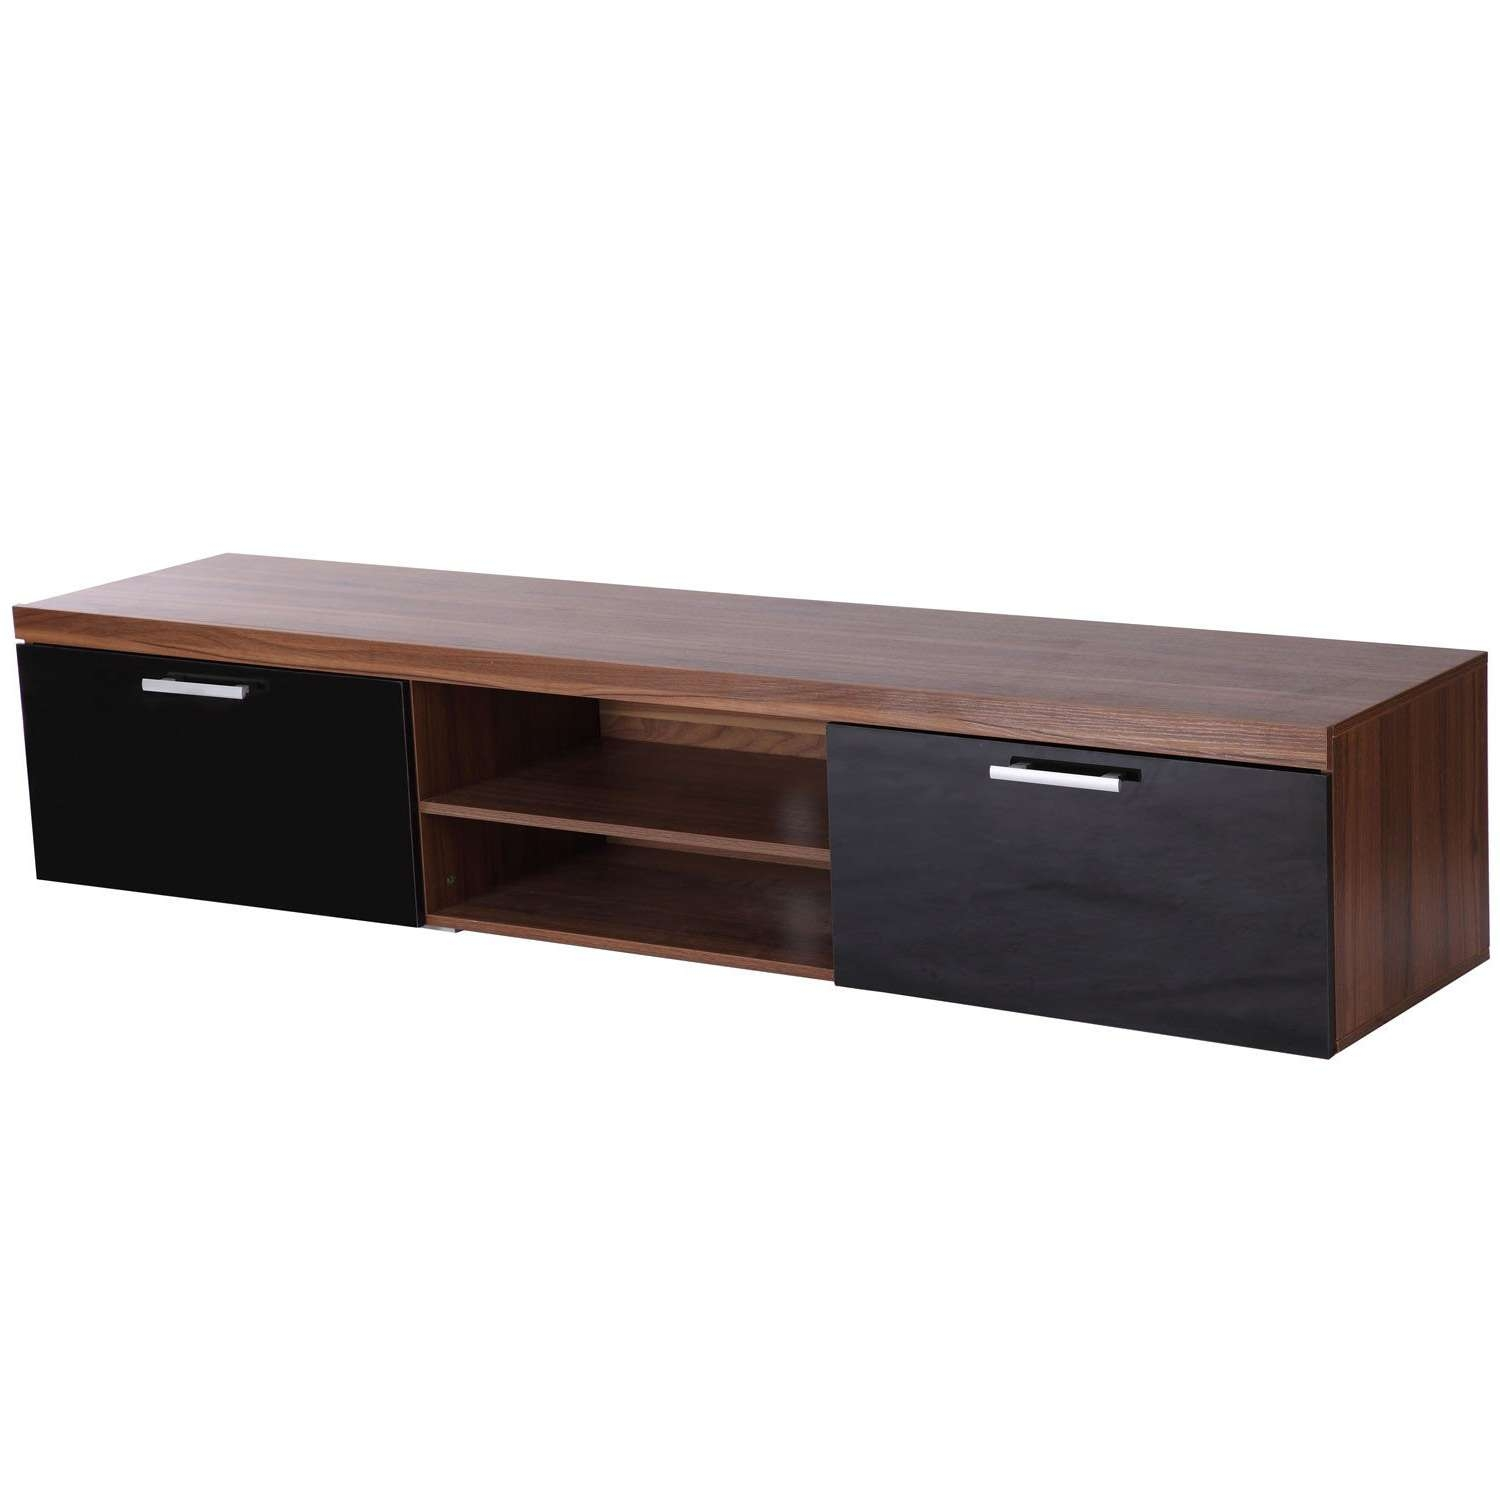 Tv Cabinet Unit, 2 High Gloss Doors Black/walnut Pertaining To Black Tv Cabinets With Doors (View 14 of 20)